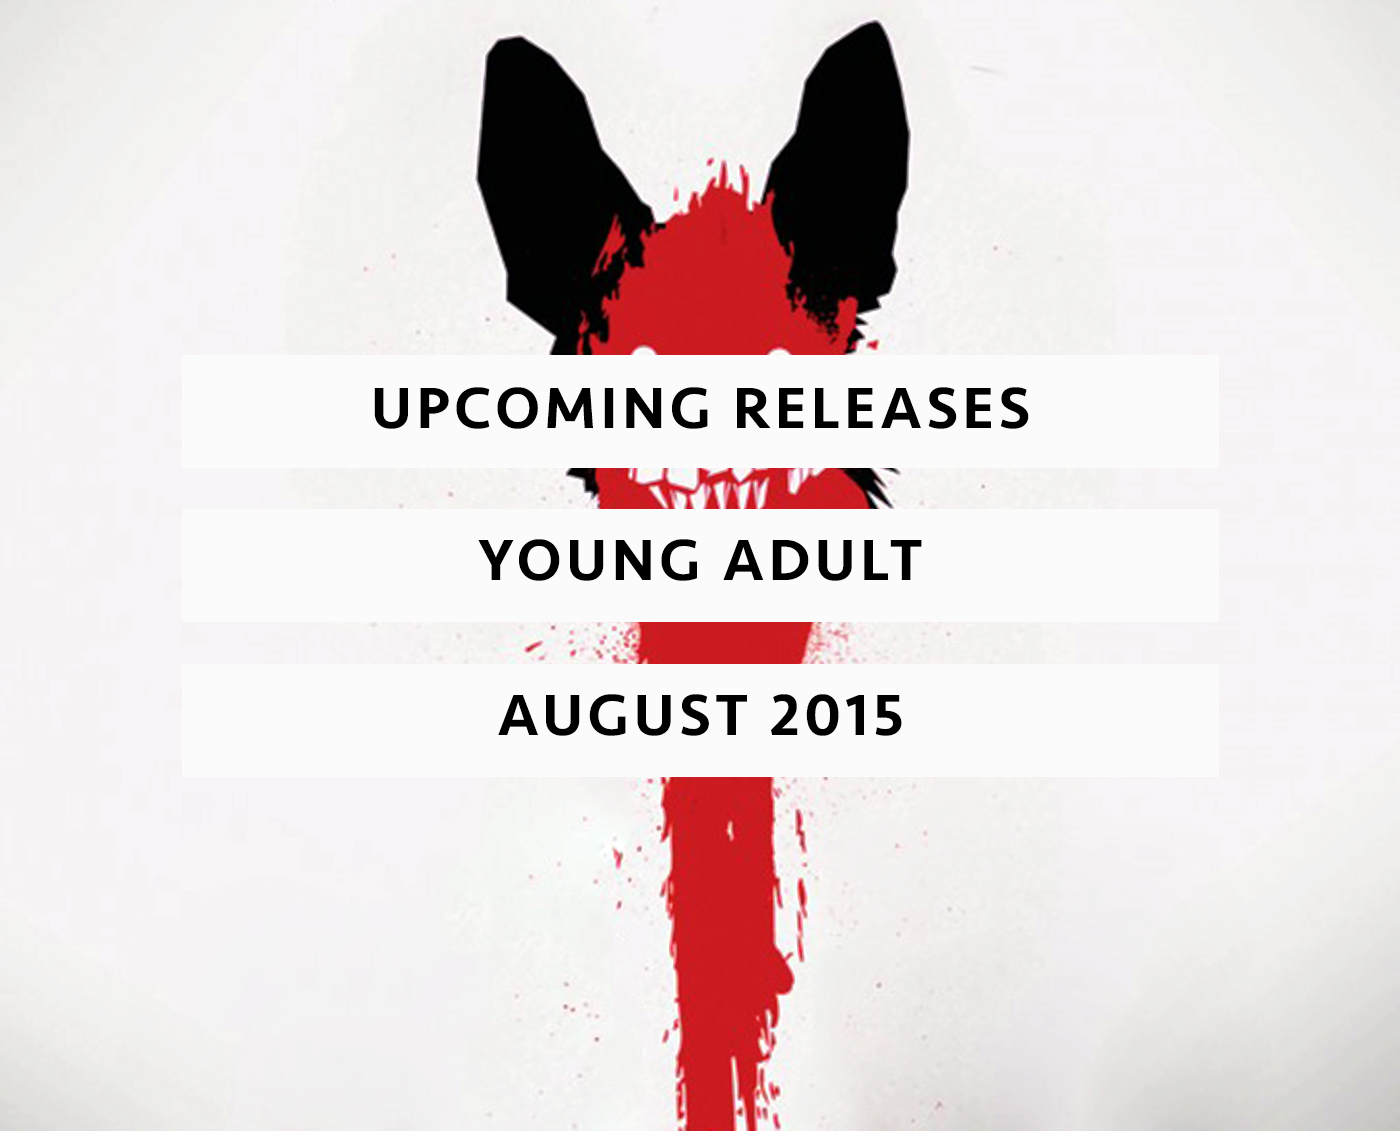 Upcoming Releases August 2015